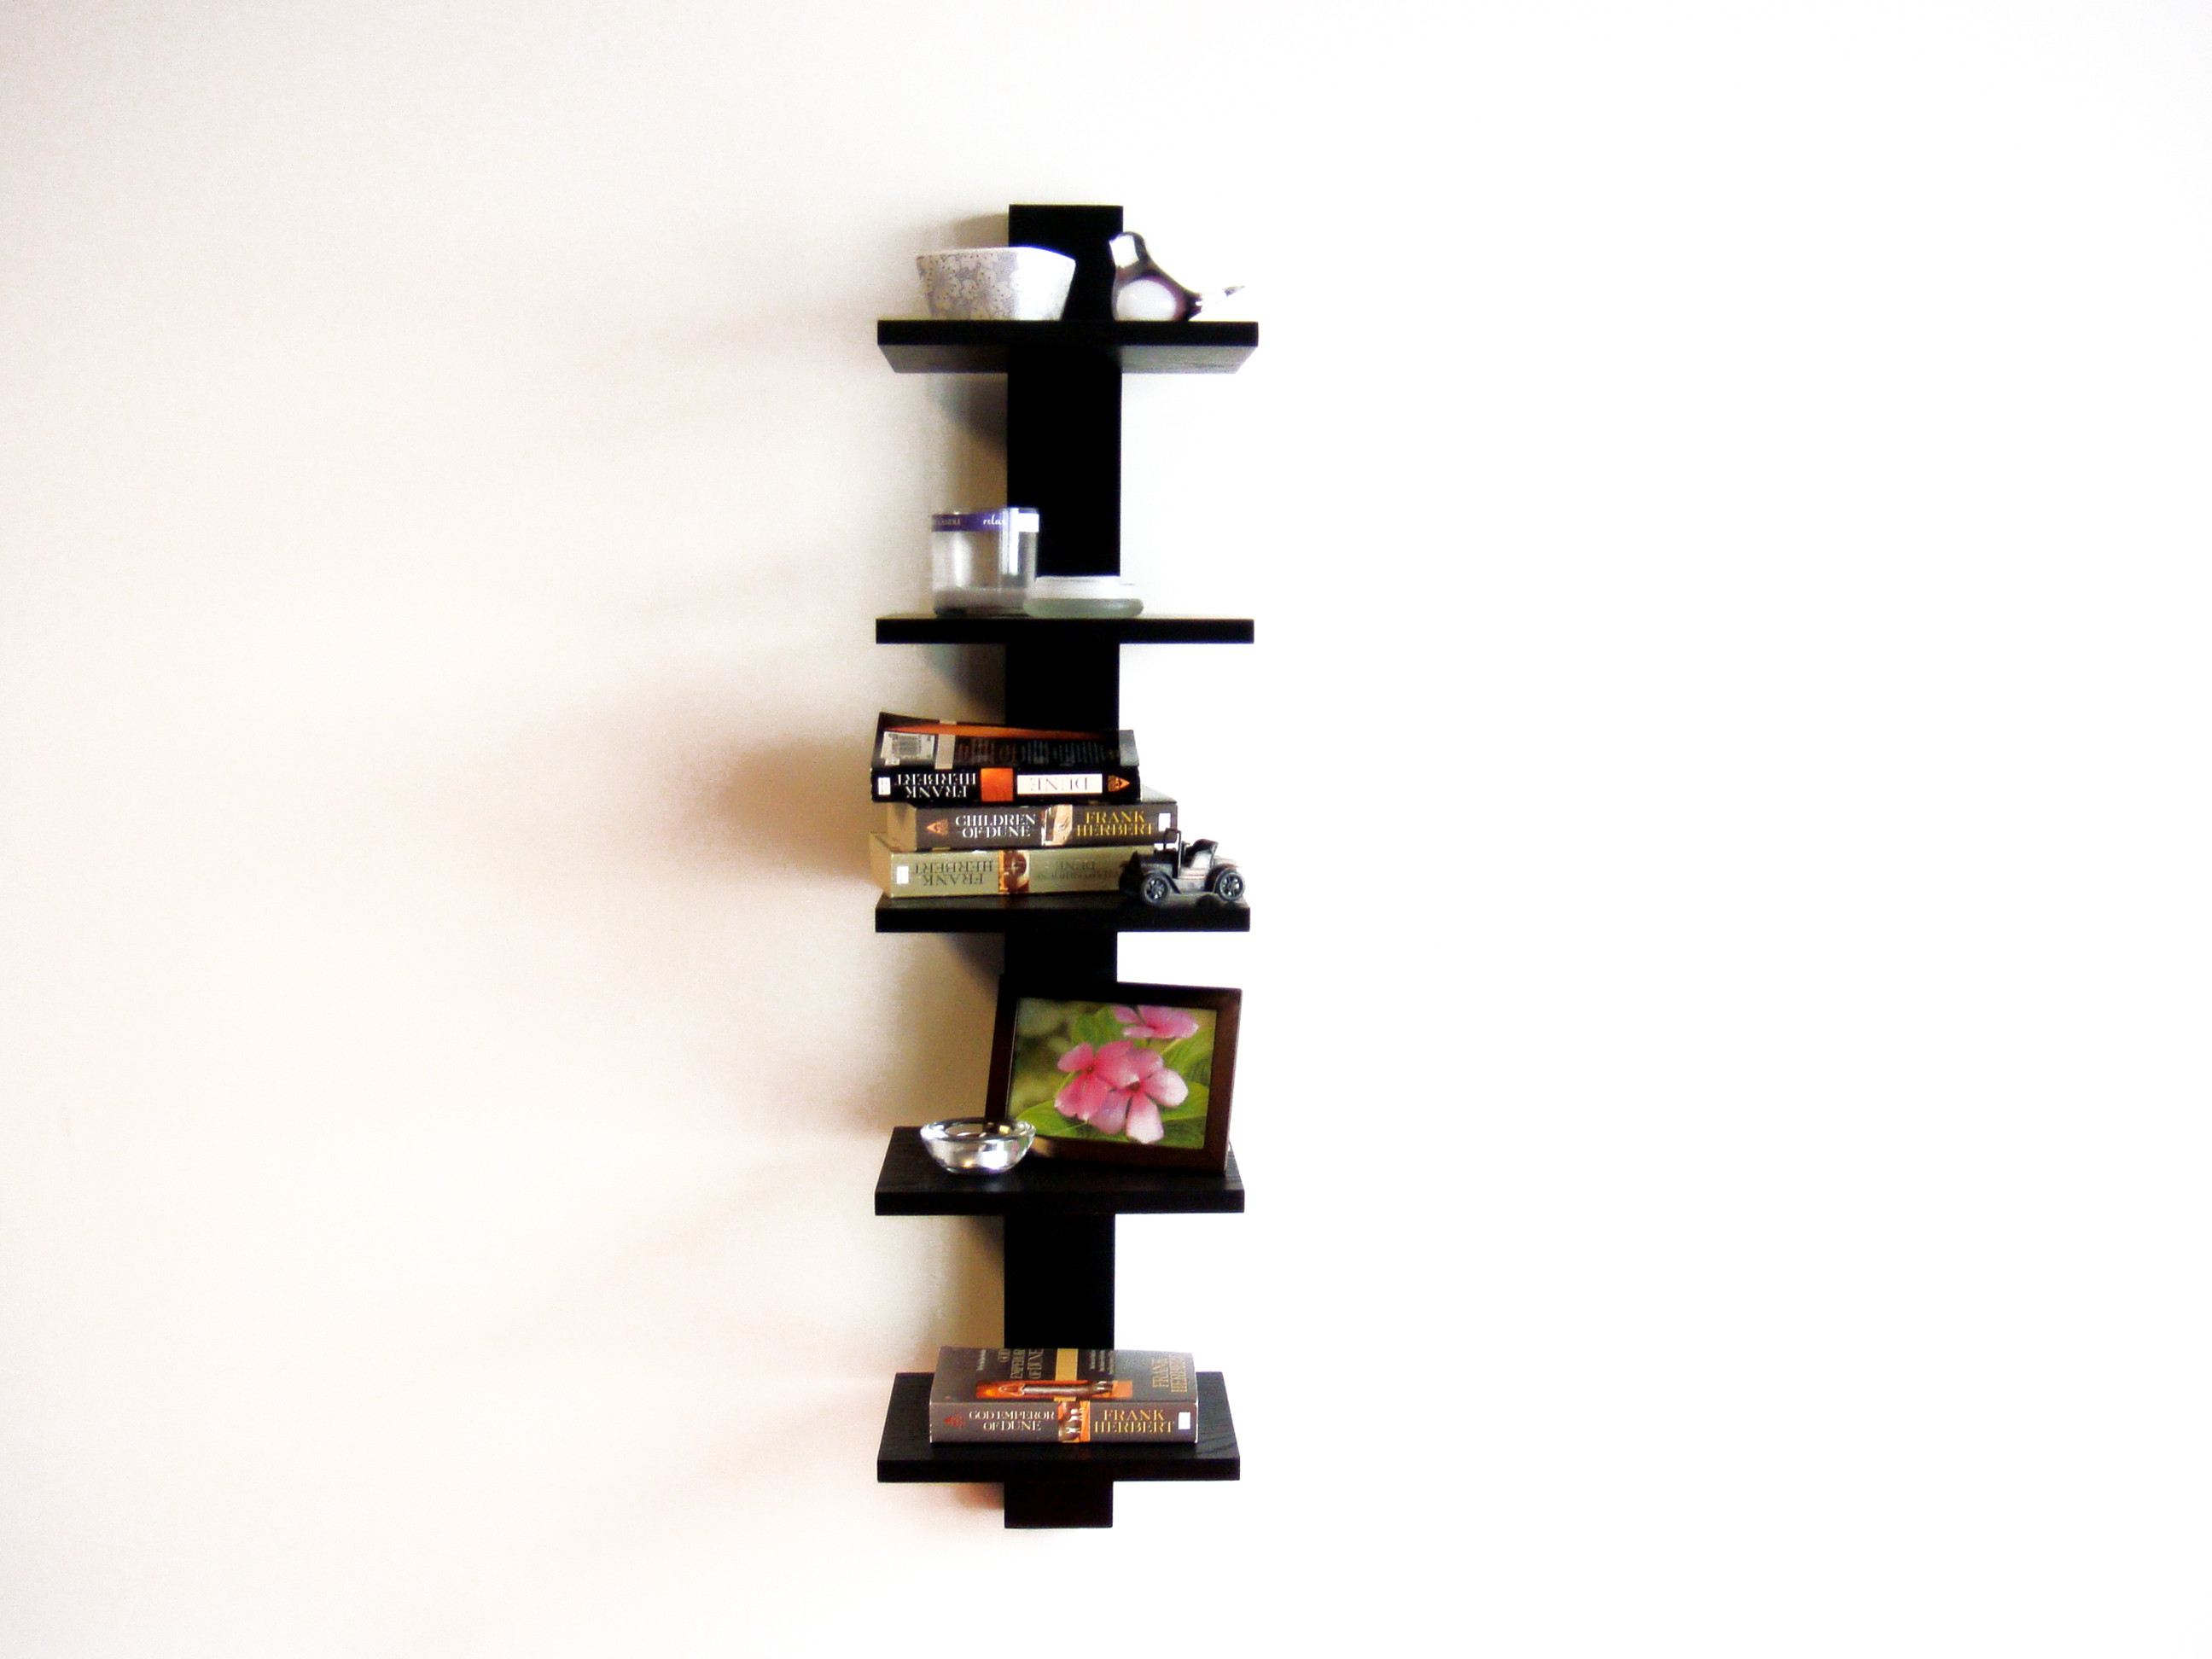 Best ideas about Vertical Wall Shelf . Save or Pin Vertical Wall Mounted Shelves For Books In Black of Now.